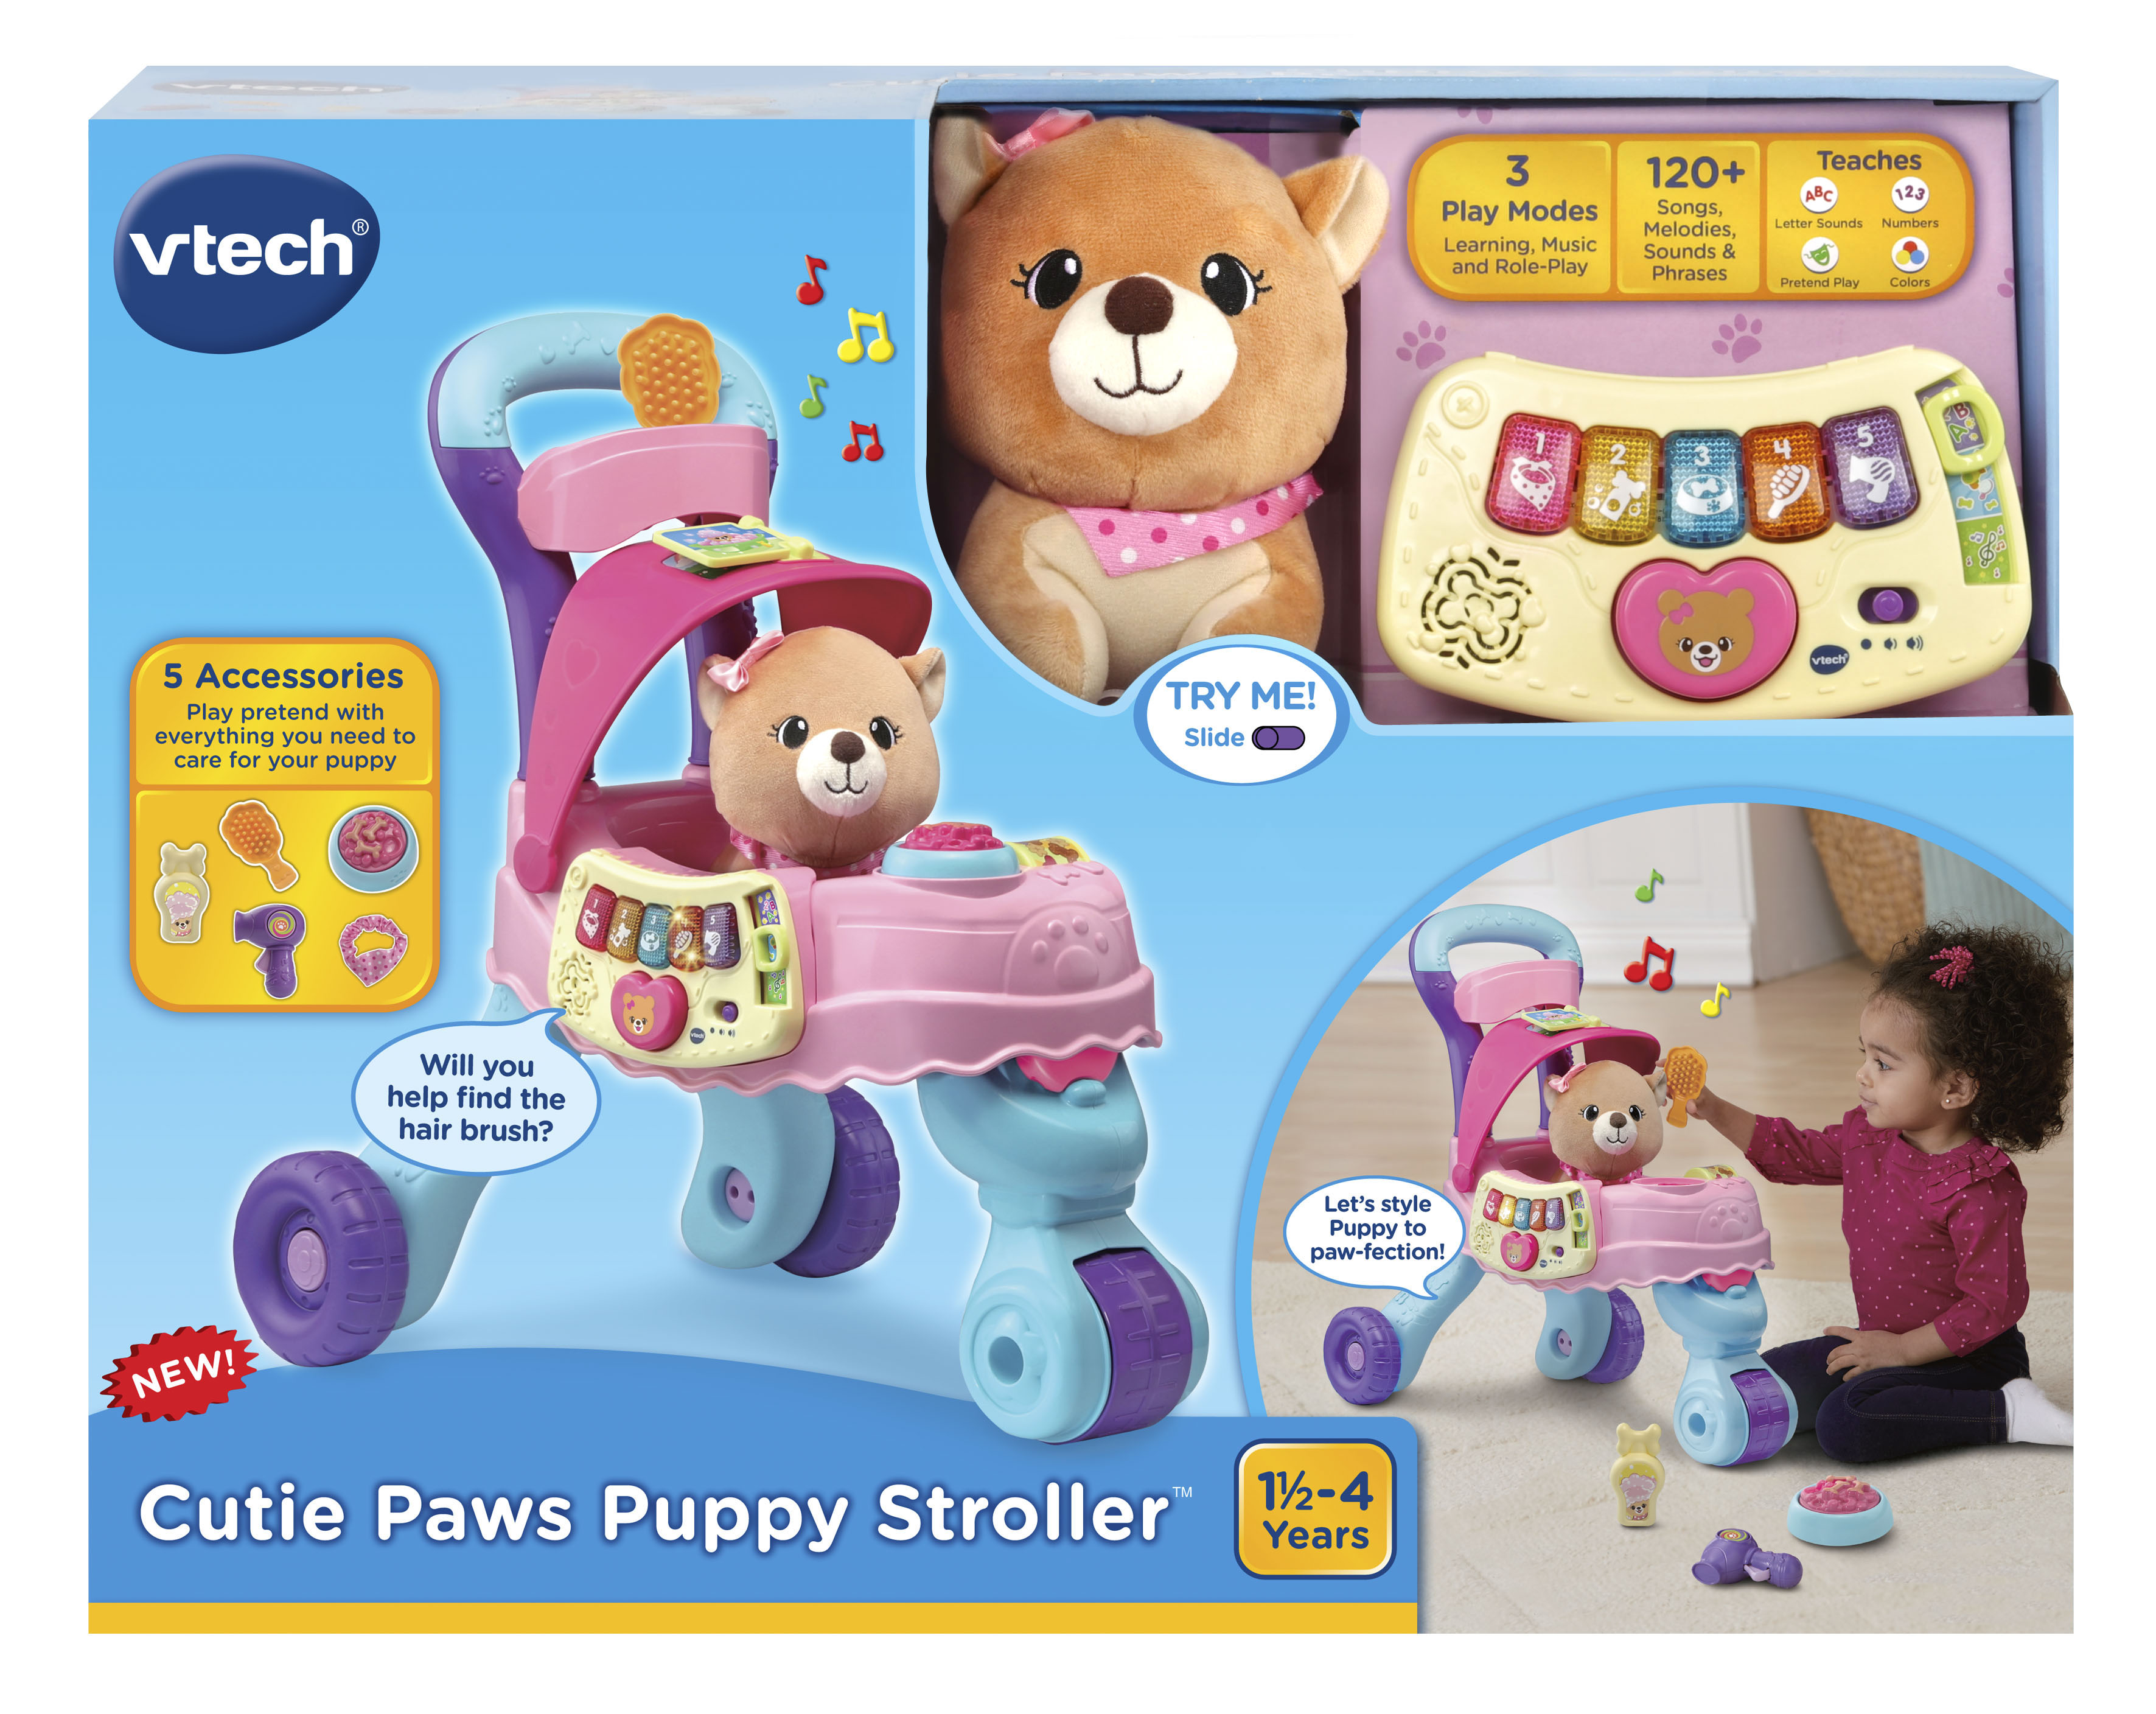 Vtech Cutie Paws Puppy Stroller With Plush Puppy And Accessories